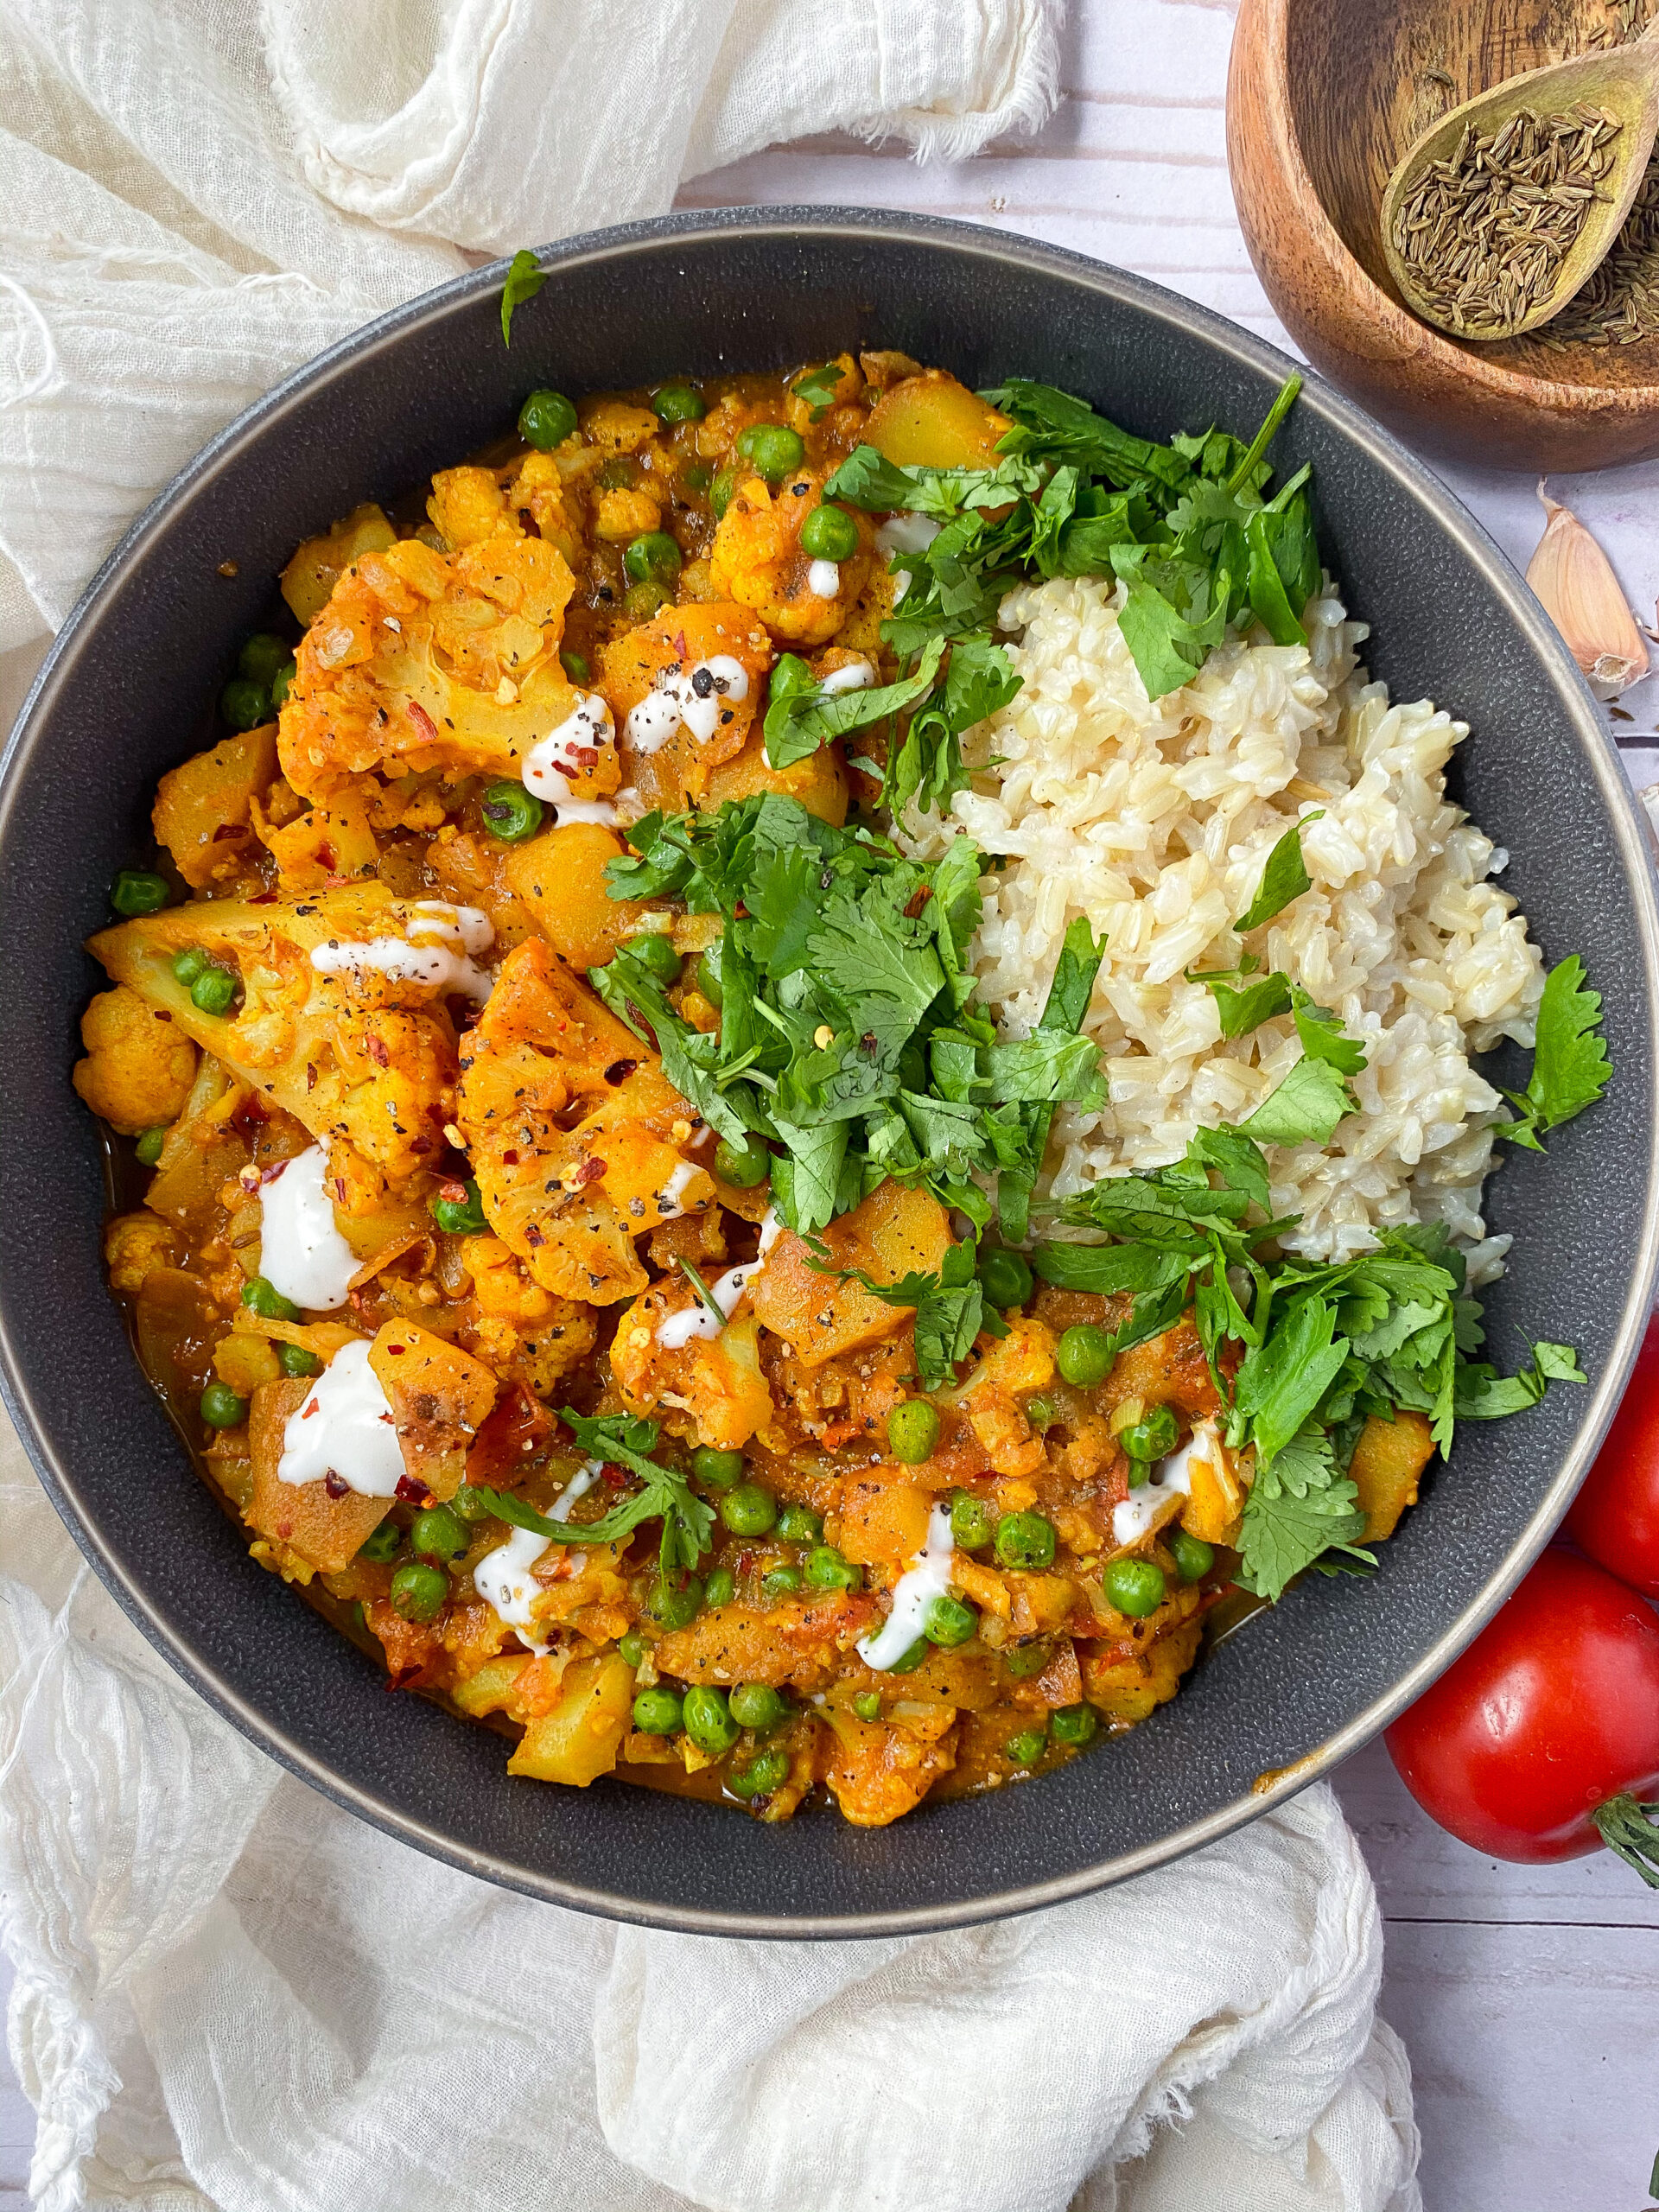 Spicy Vegan Cauliflower Curry Recipe